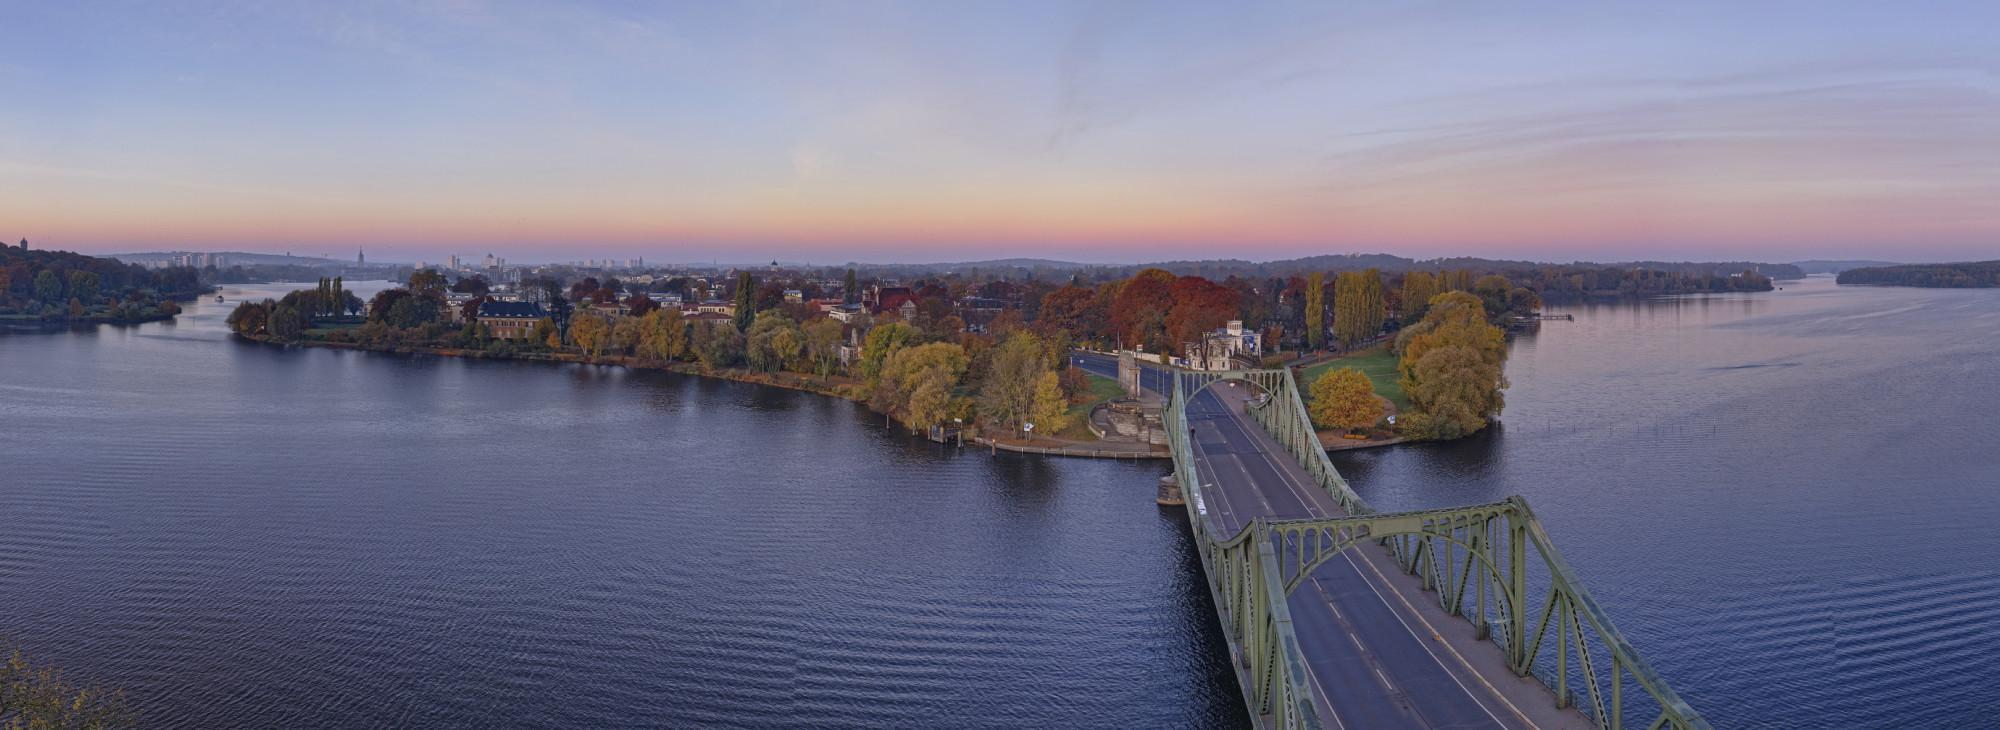 Potsdam is an island of contemplation. – © Andre Stiebitz / PMSG